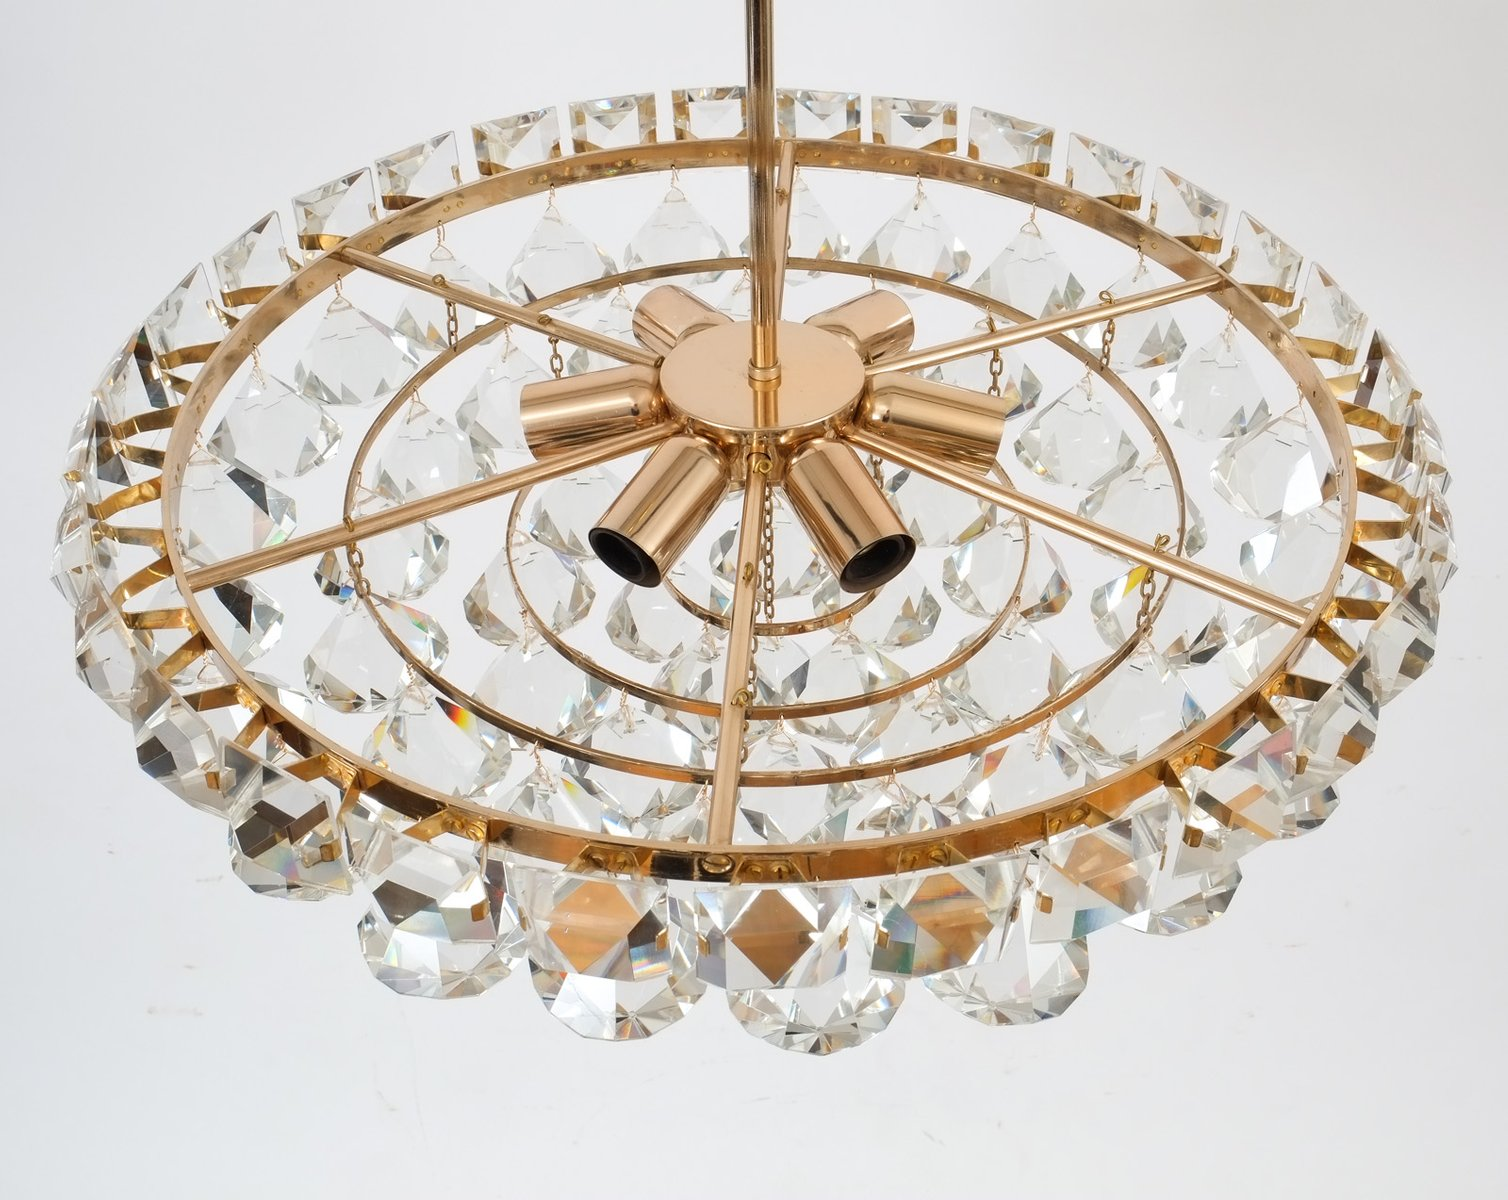 Vintage Chandelier with Pear-Shaped Crystals from Bakalowits ...